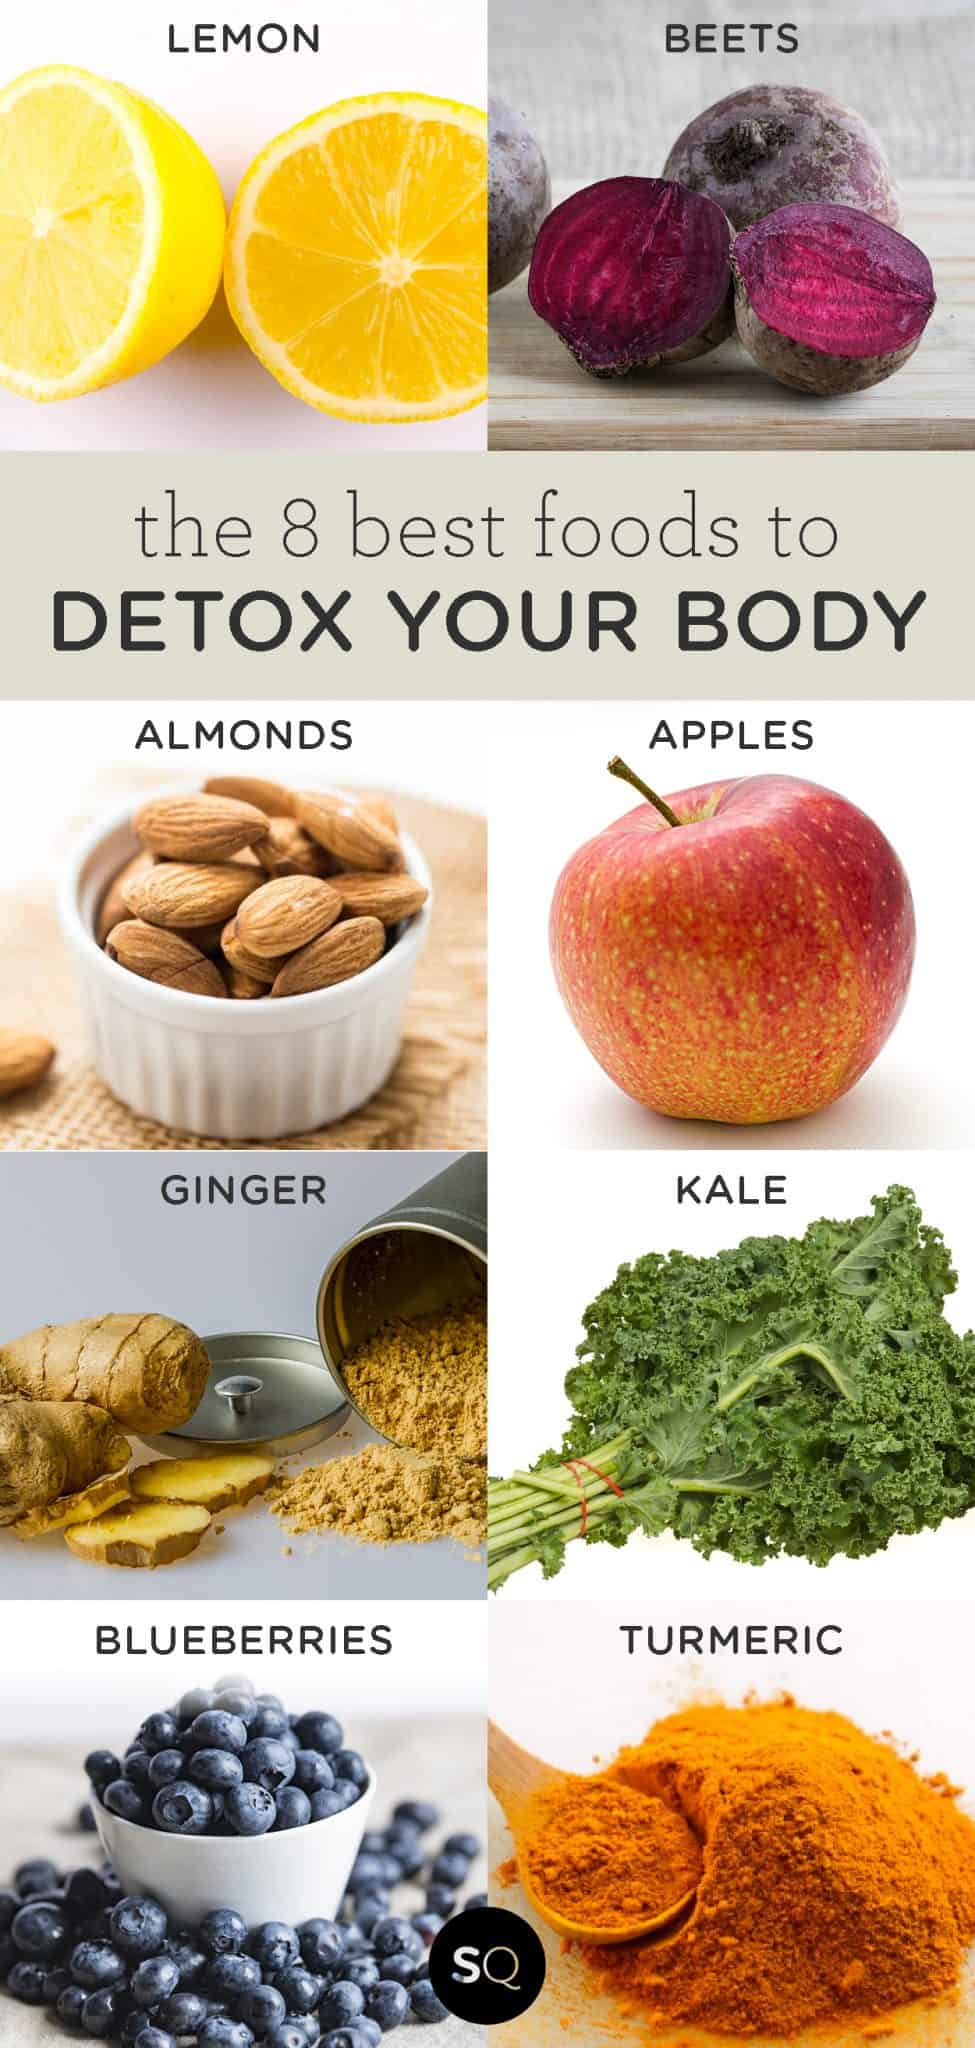 The 8 Best Foods to Detox Your Body - Simply Quinoa